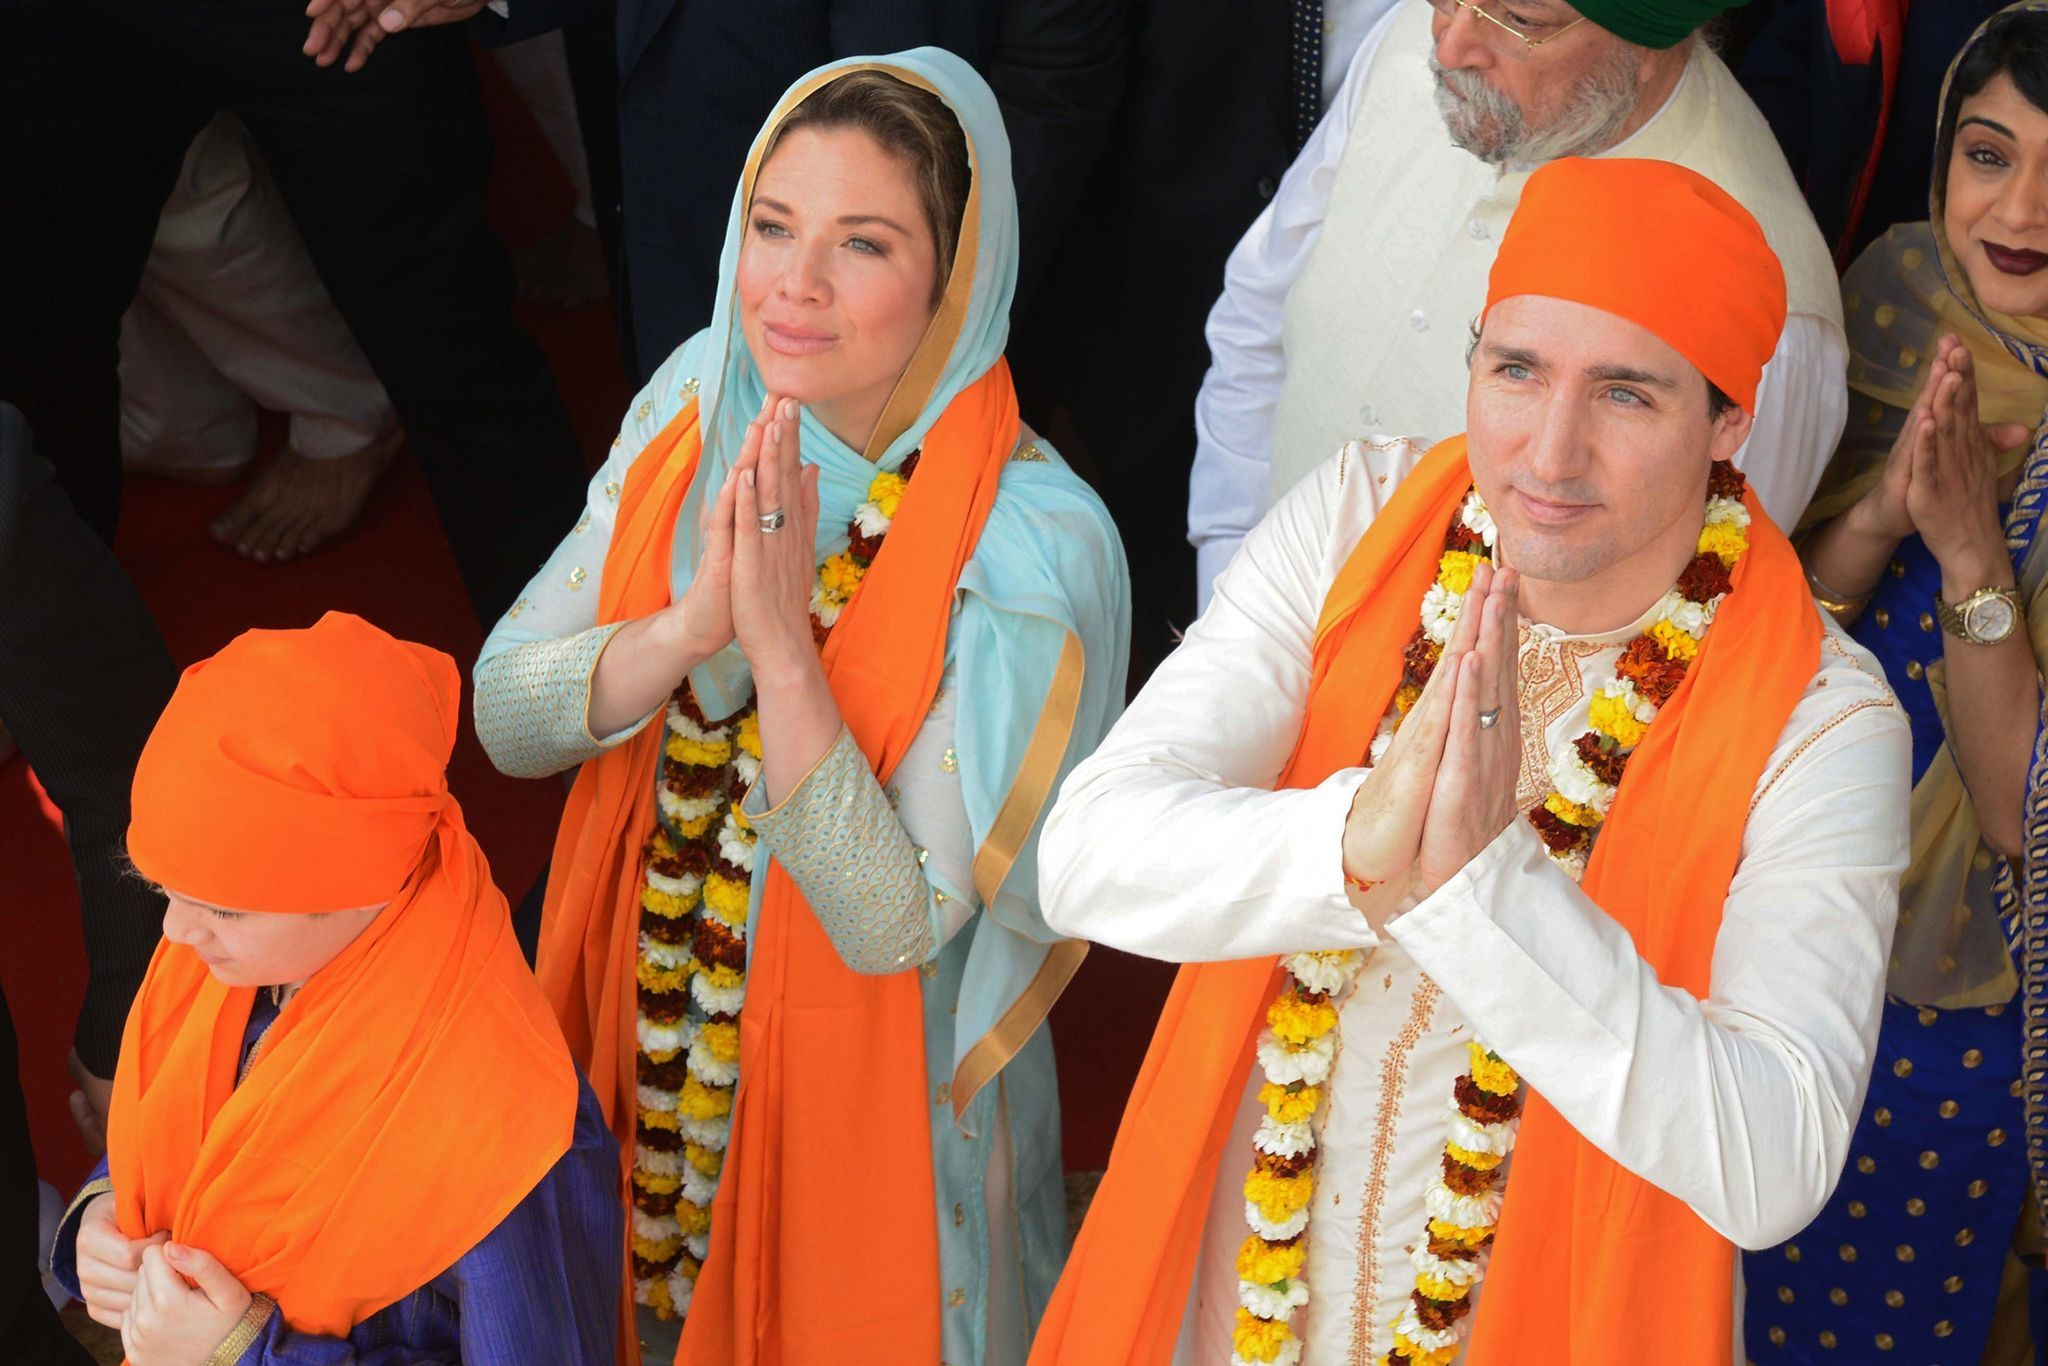 India to Justin Trudeau: Dude stop trying so hard